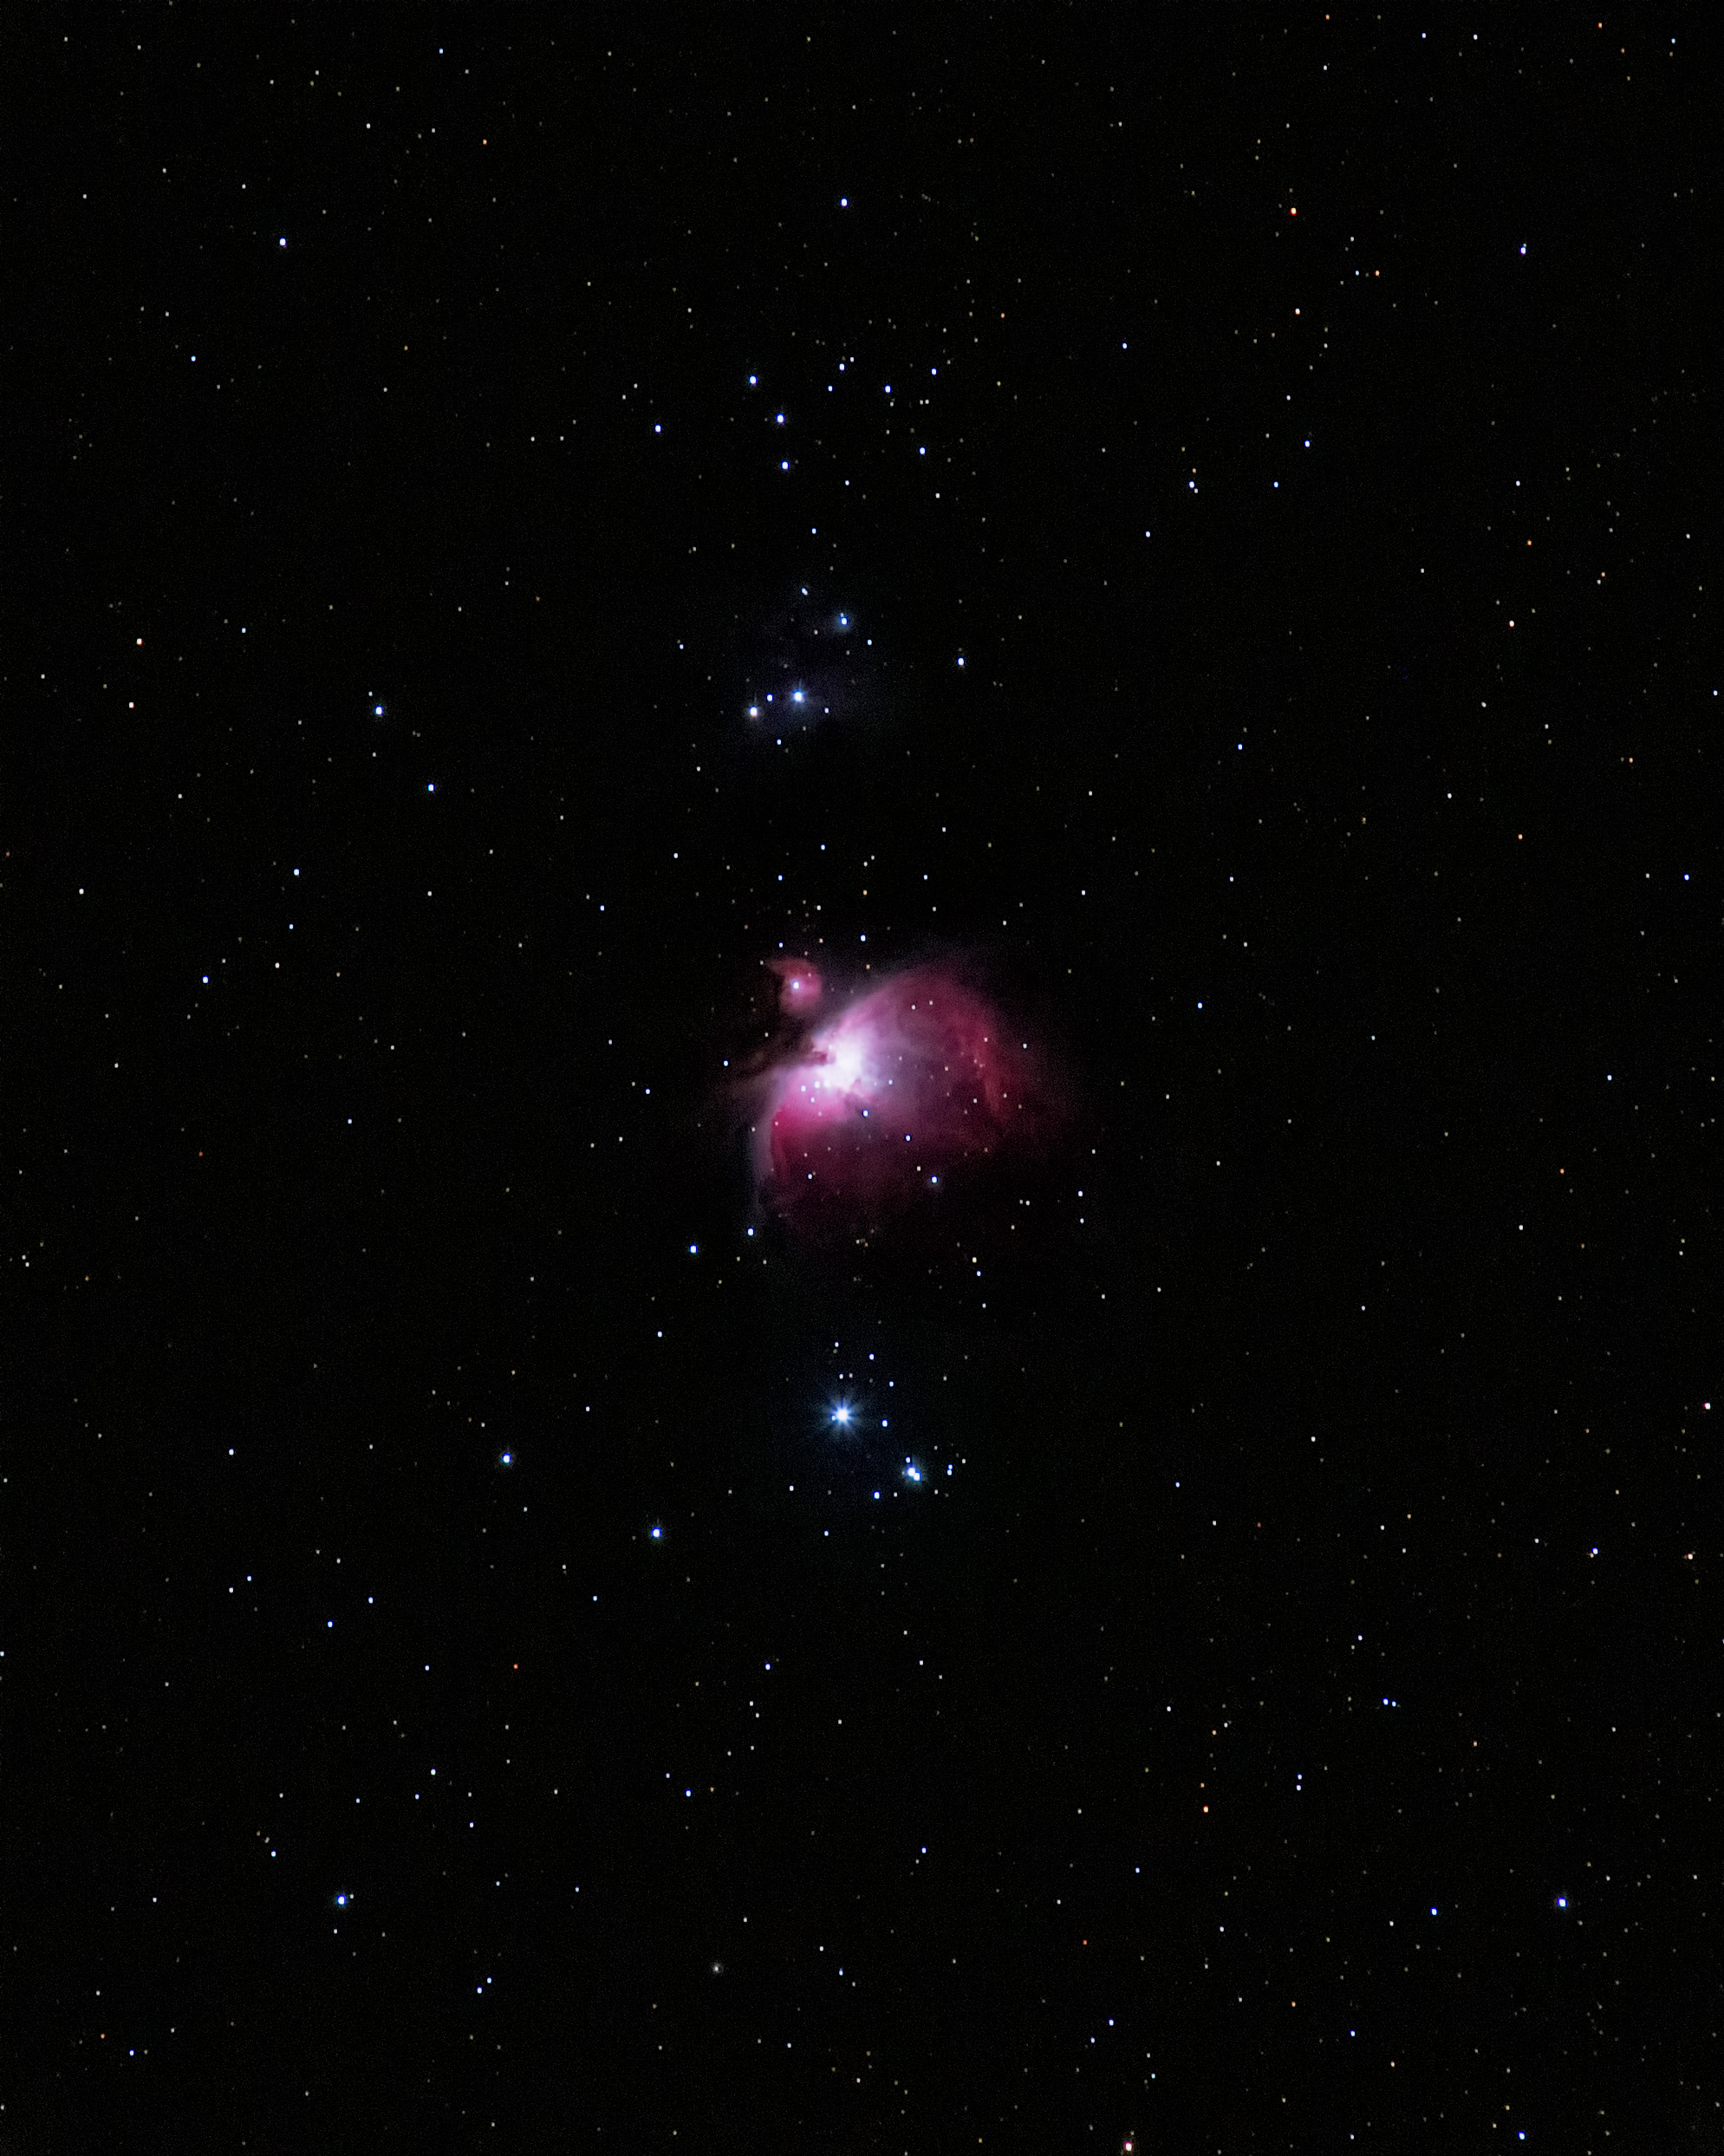 M42 Orion Nebula on Blackheath by Mike Meynell